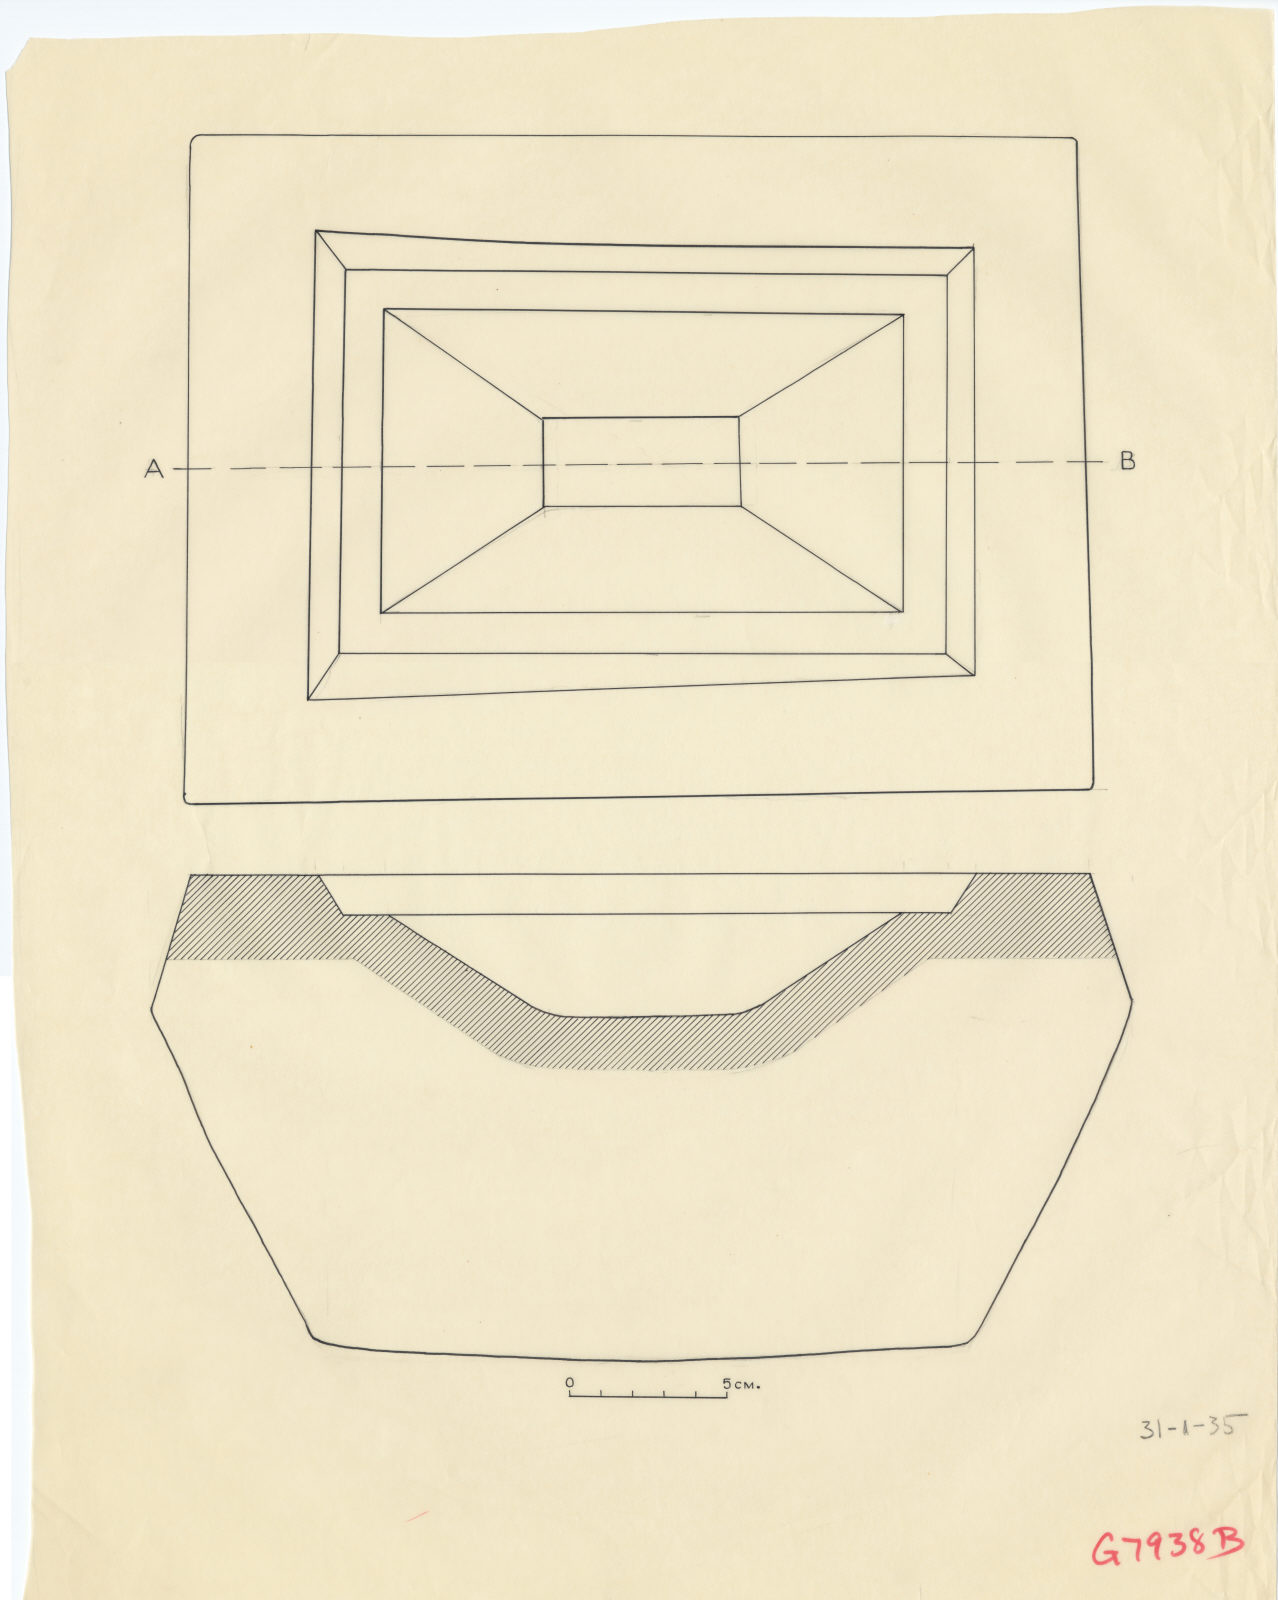 Drawings: G 7938 B: offering basin, plan and section